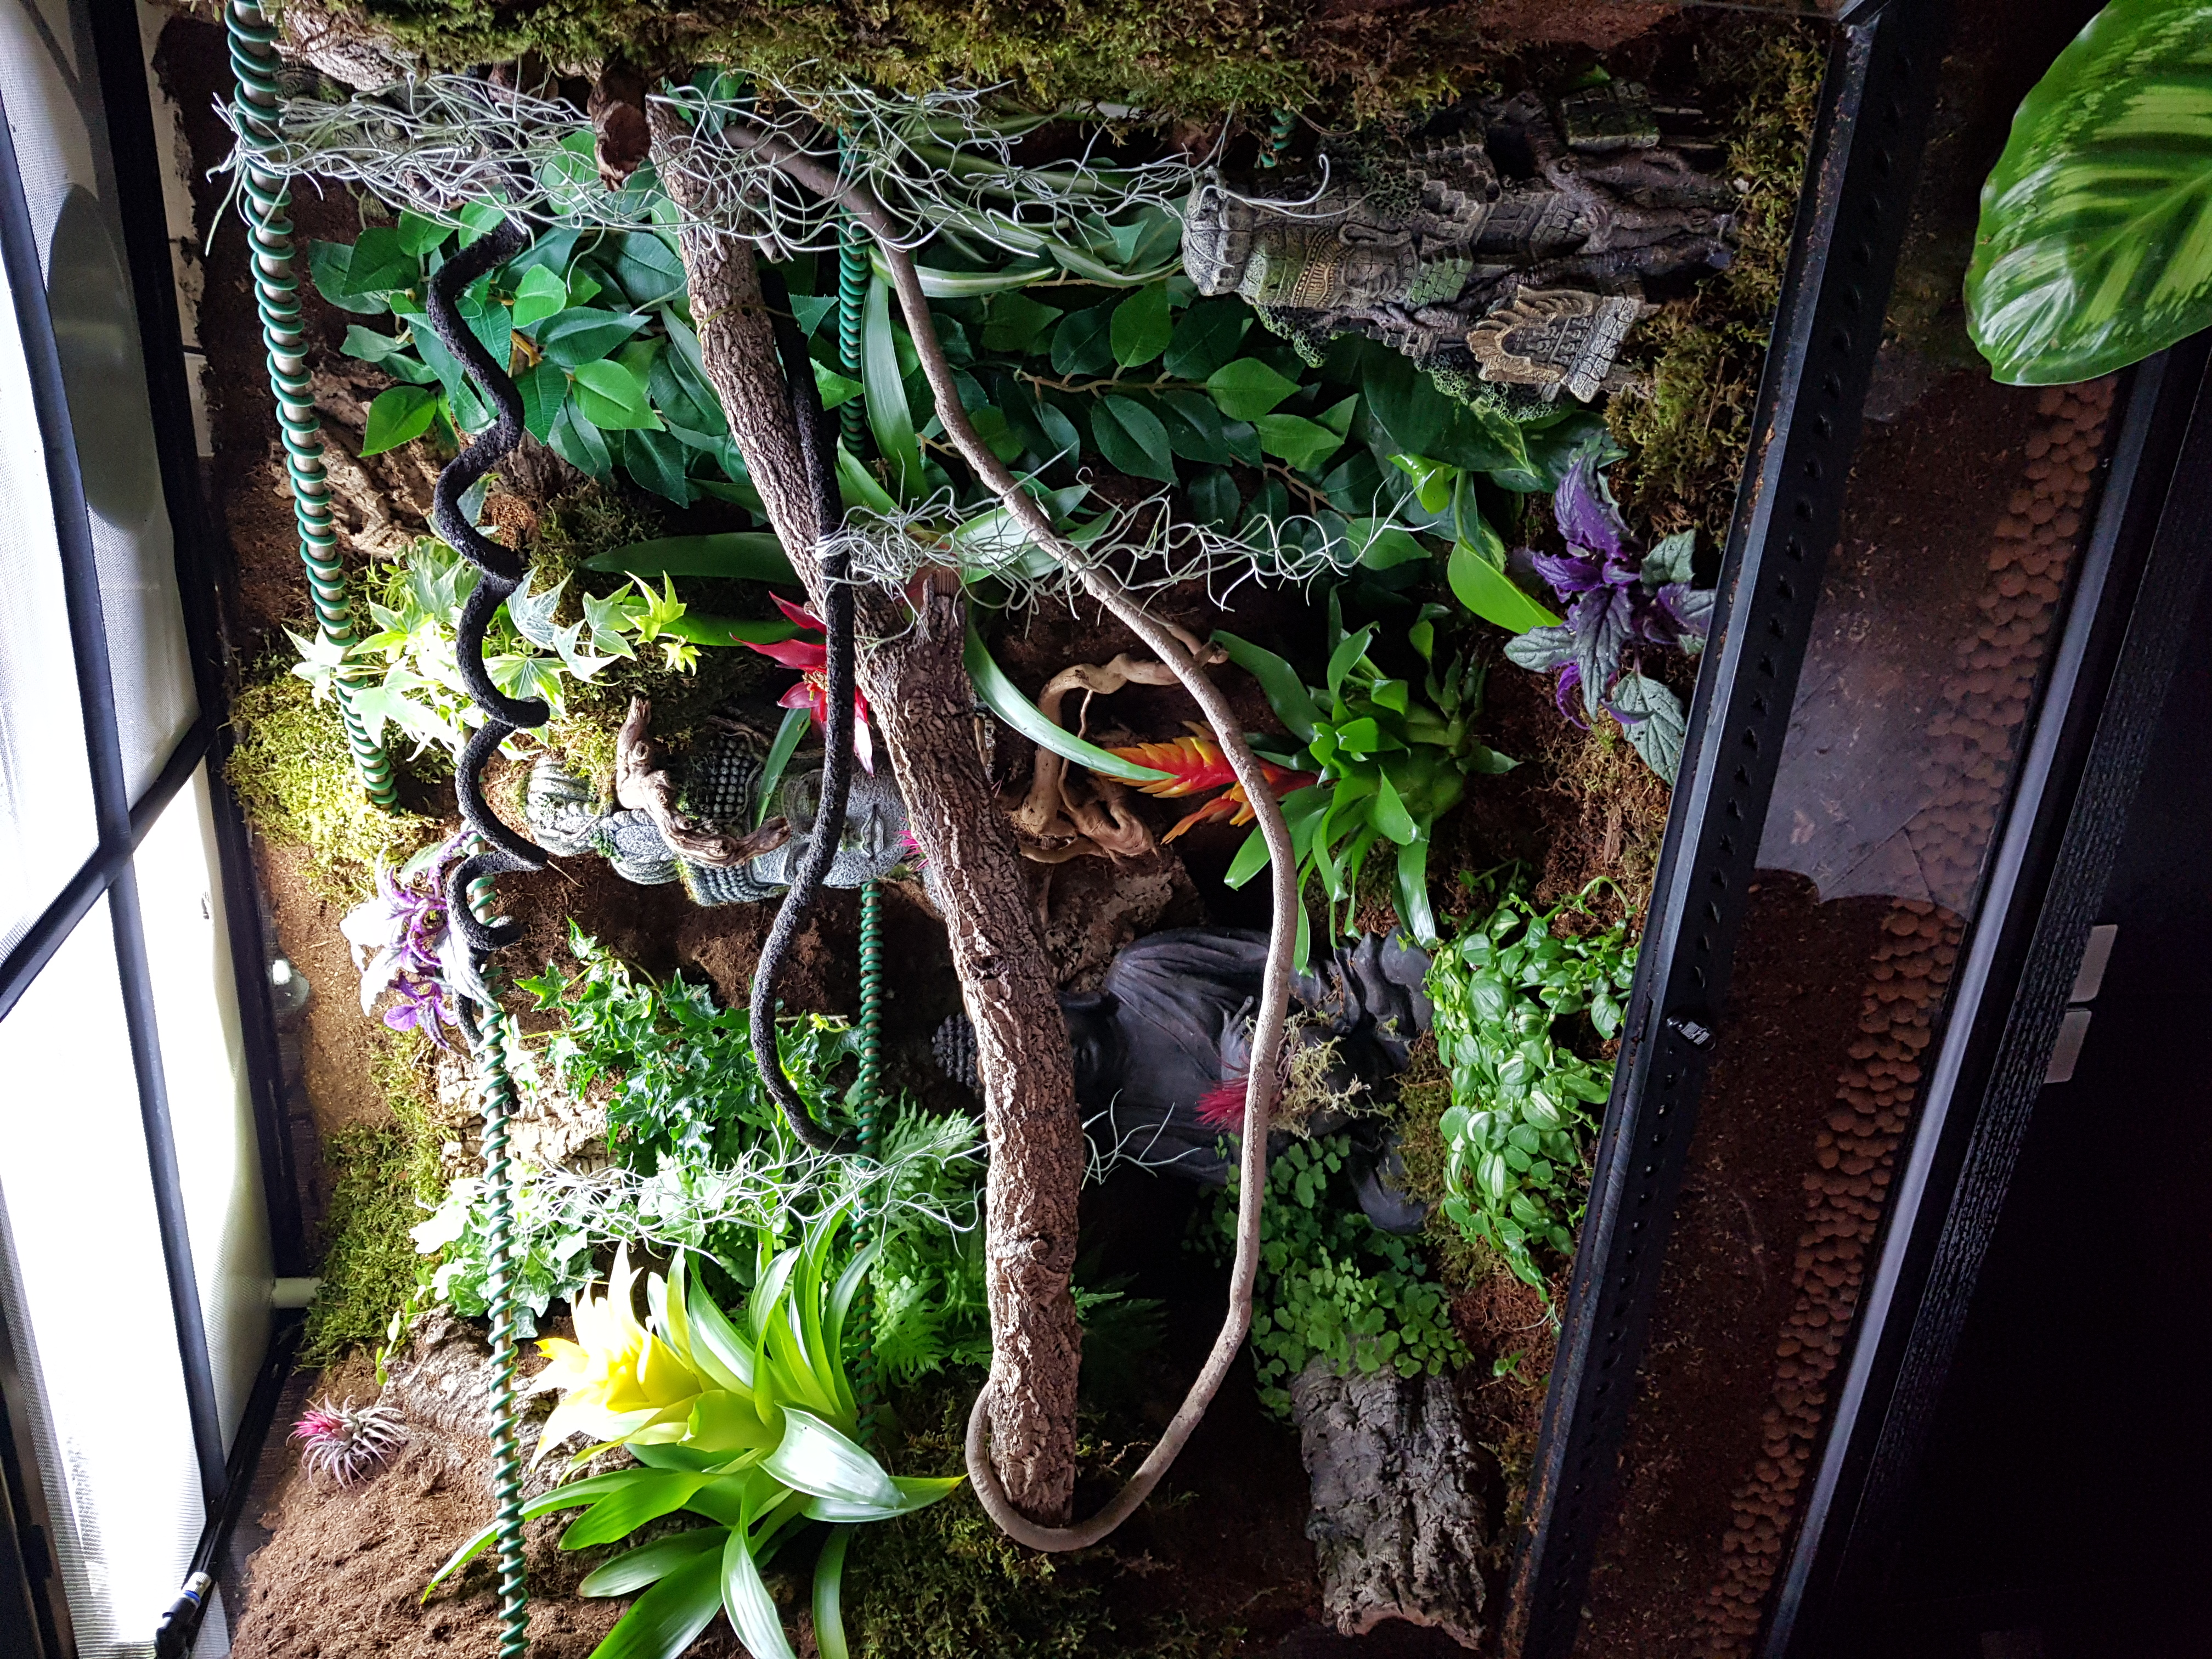 Show Me Your Viv Setups!!-20190127_133031_1556629728730.jpg